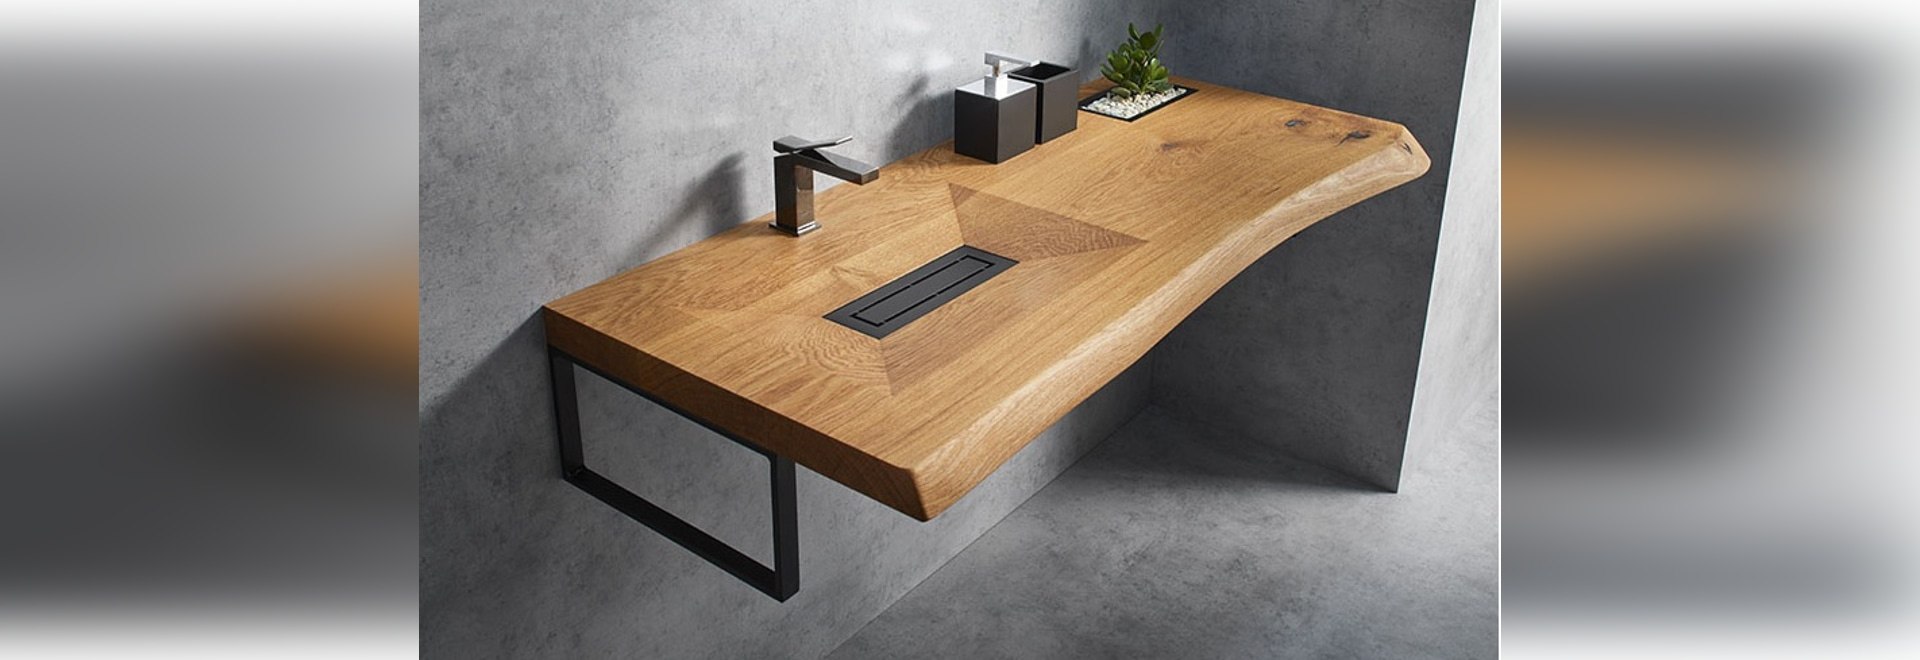 This Wood Vanity Has A Carved Out Sink And A Built-In Sunken Planter